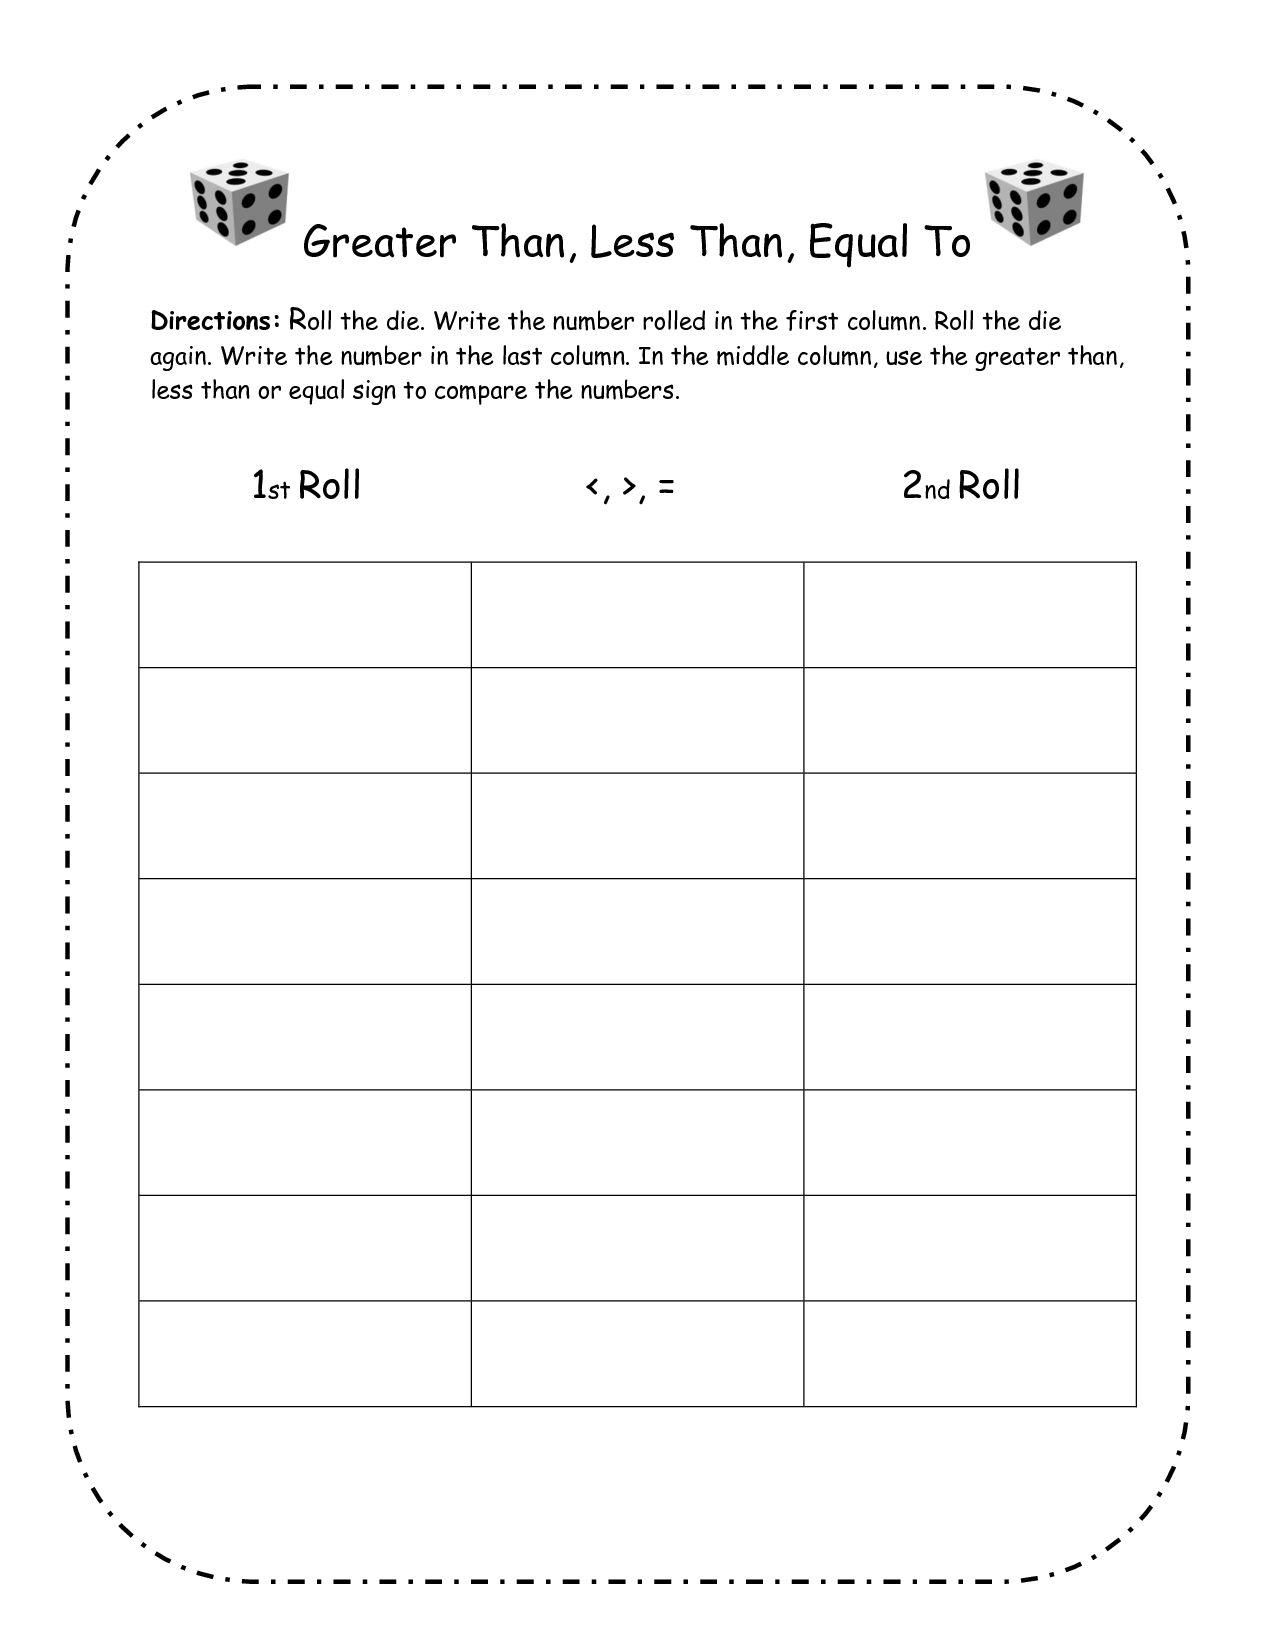 worksheet Worksheets For Greater Than And Less Than 1st grade greater than less worksheets free library w ksheet 612792 m th n gre ter ksheets